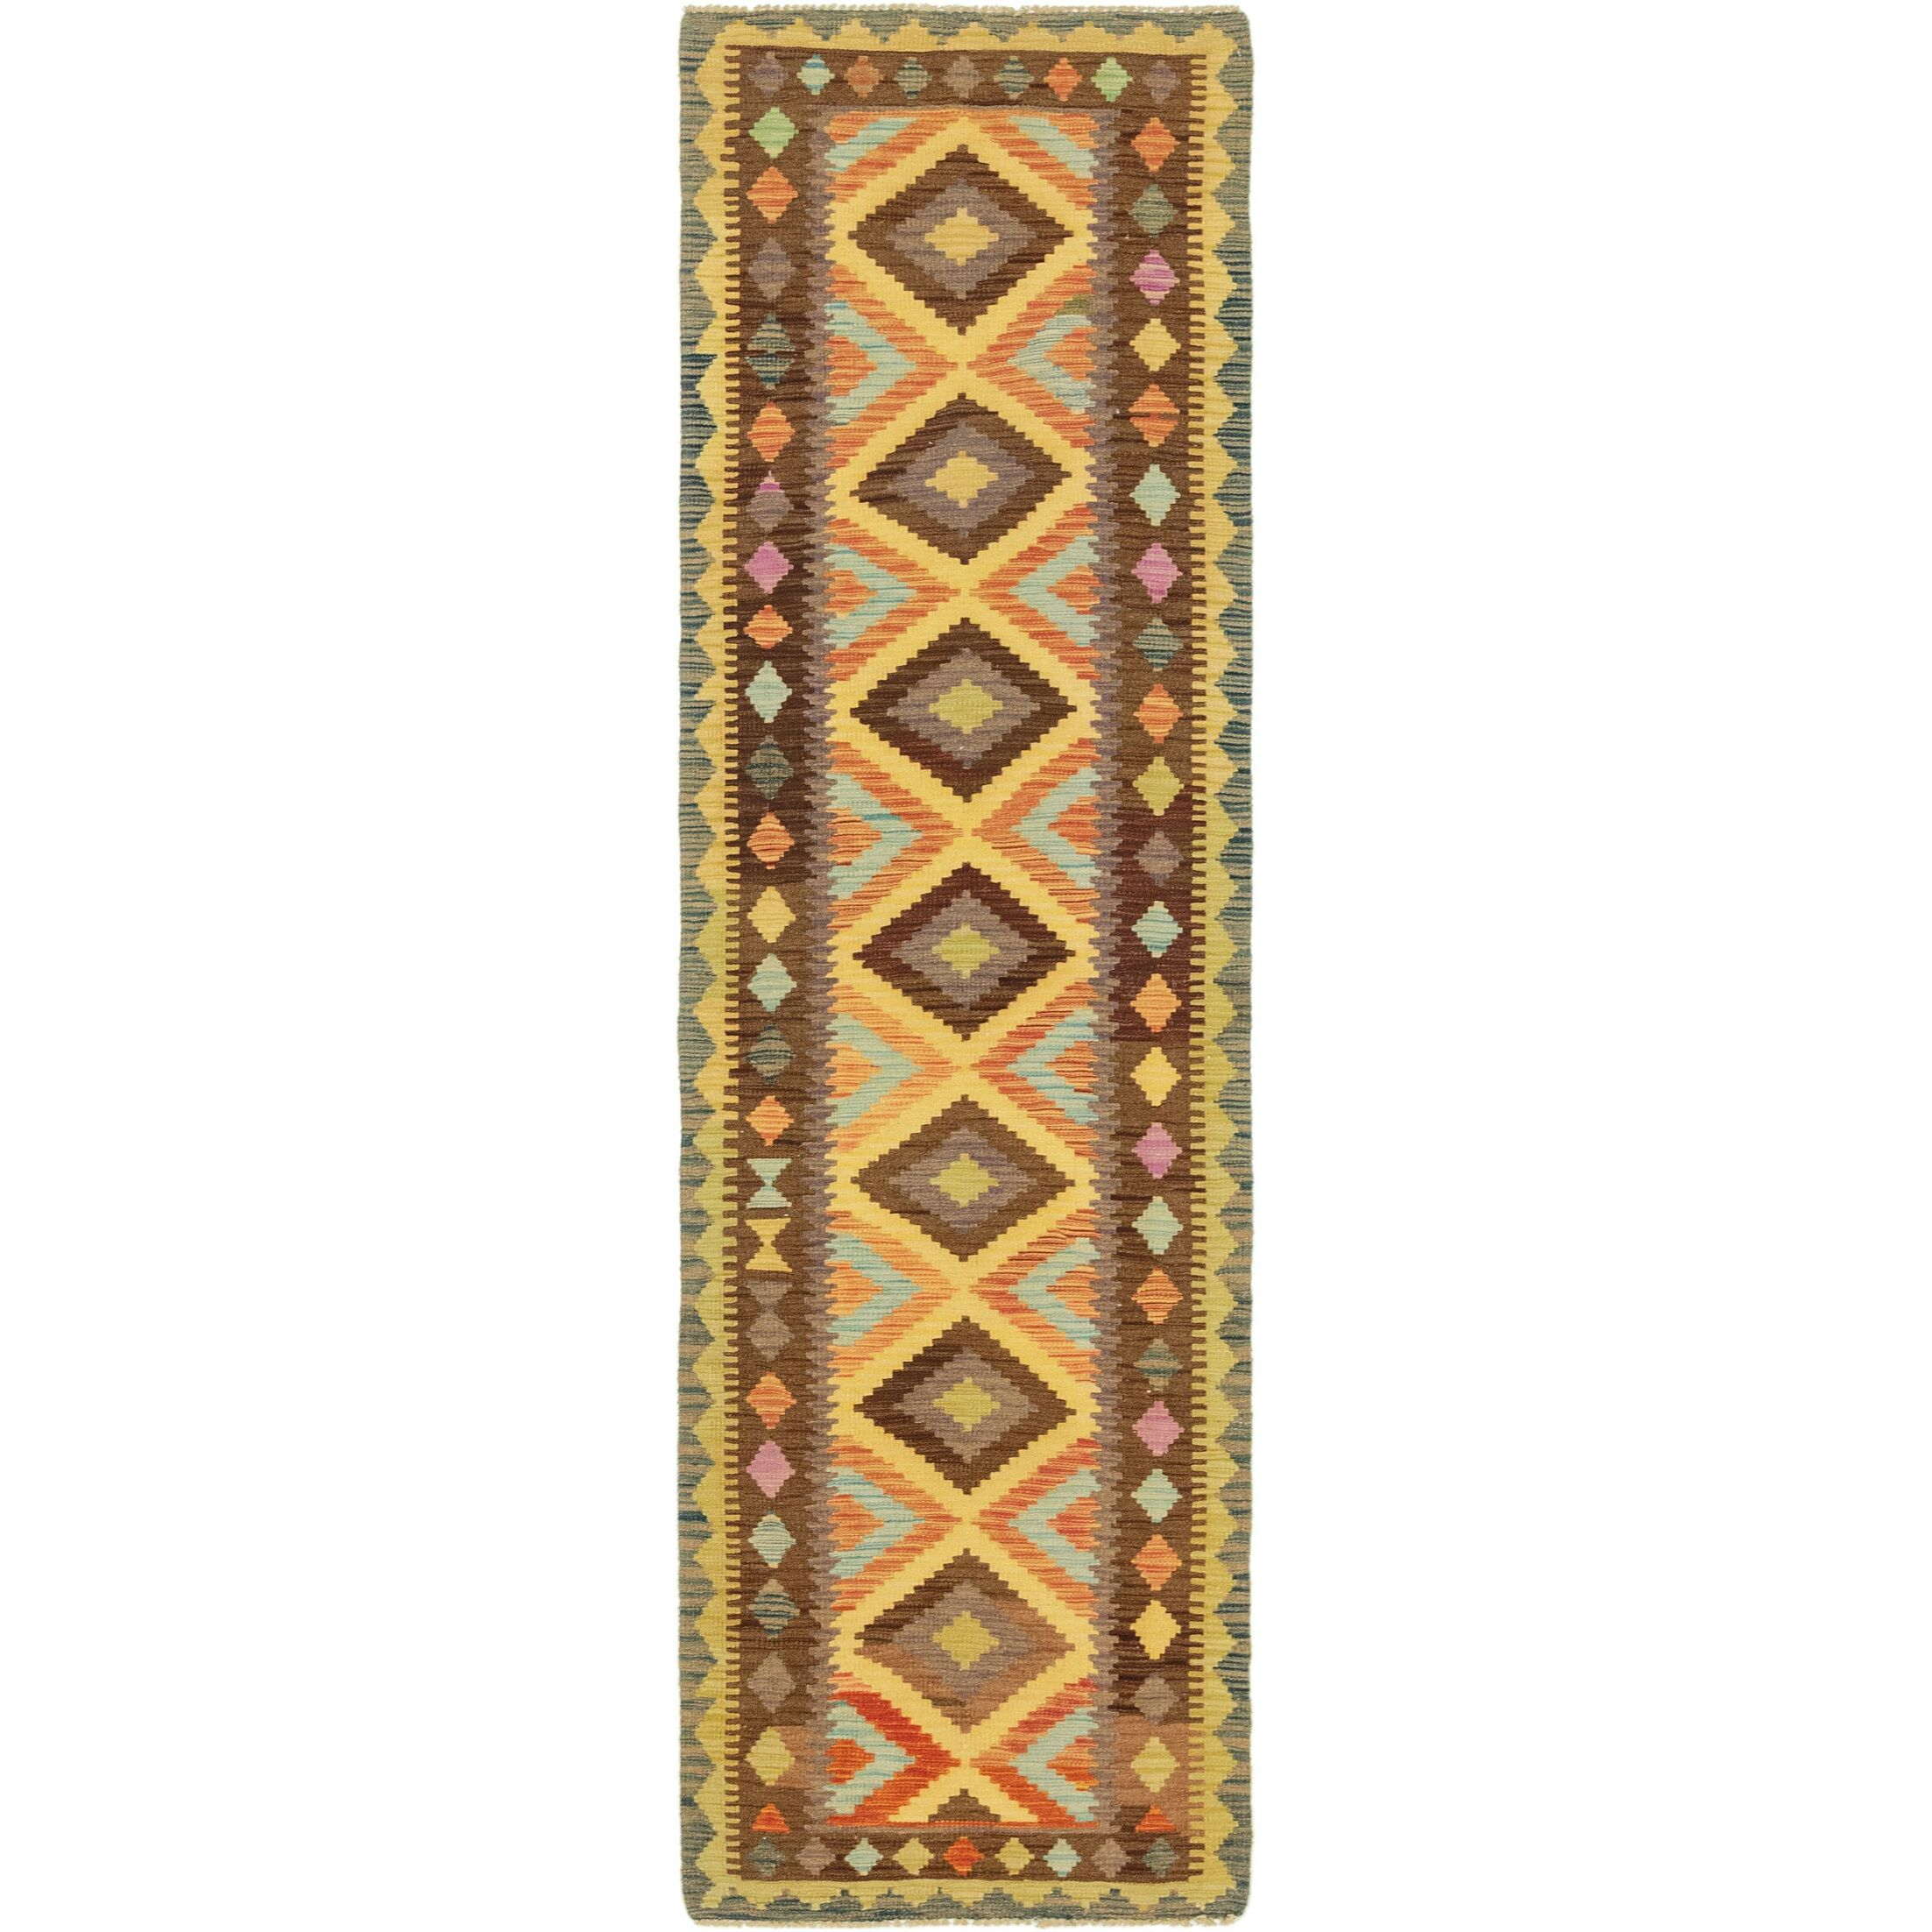 One-of-a-Kind Lorain Hand-Knotted Runner 2'6